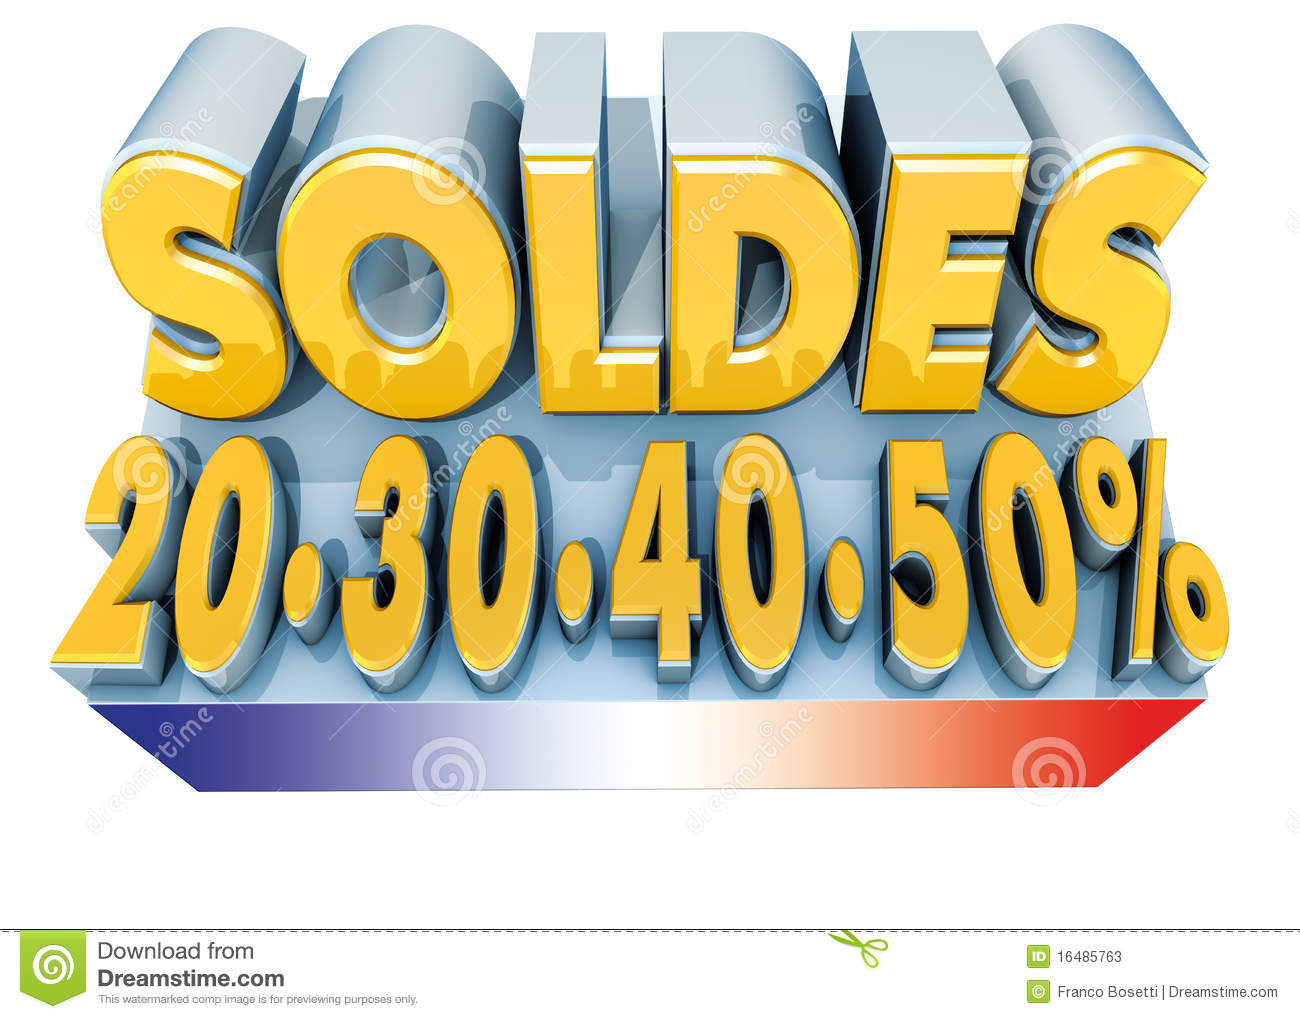 Soldes and france flag stock photos image 16485763 for But fr soldes